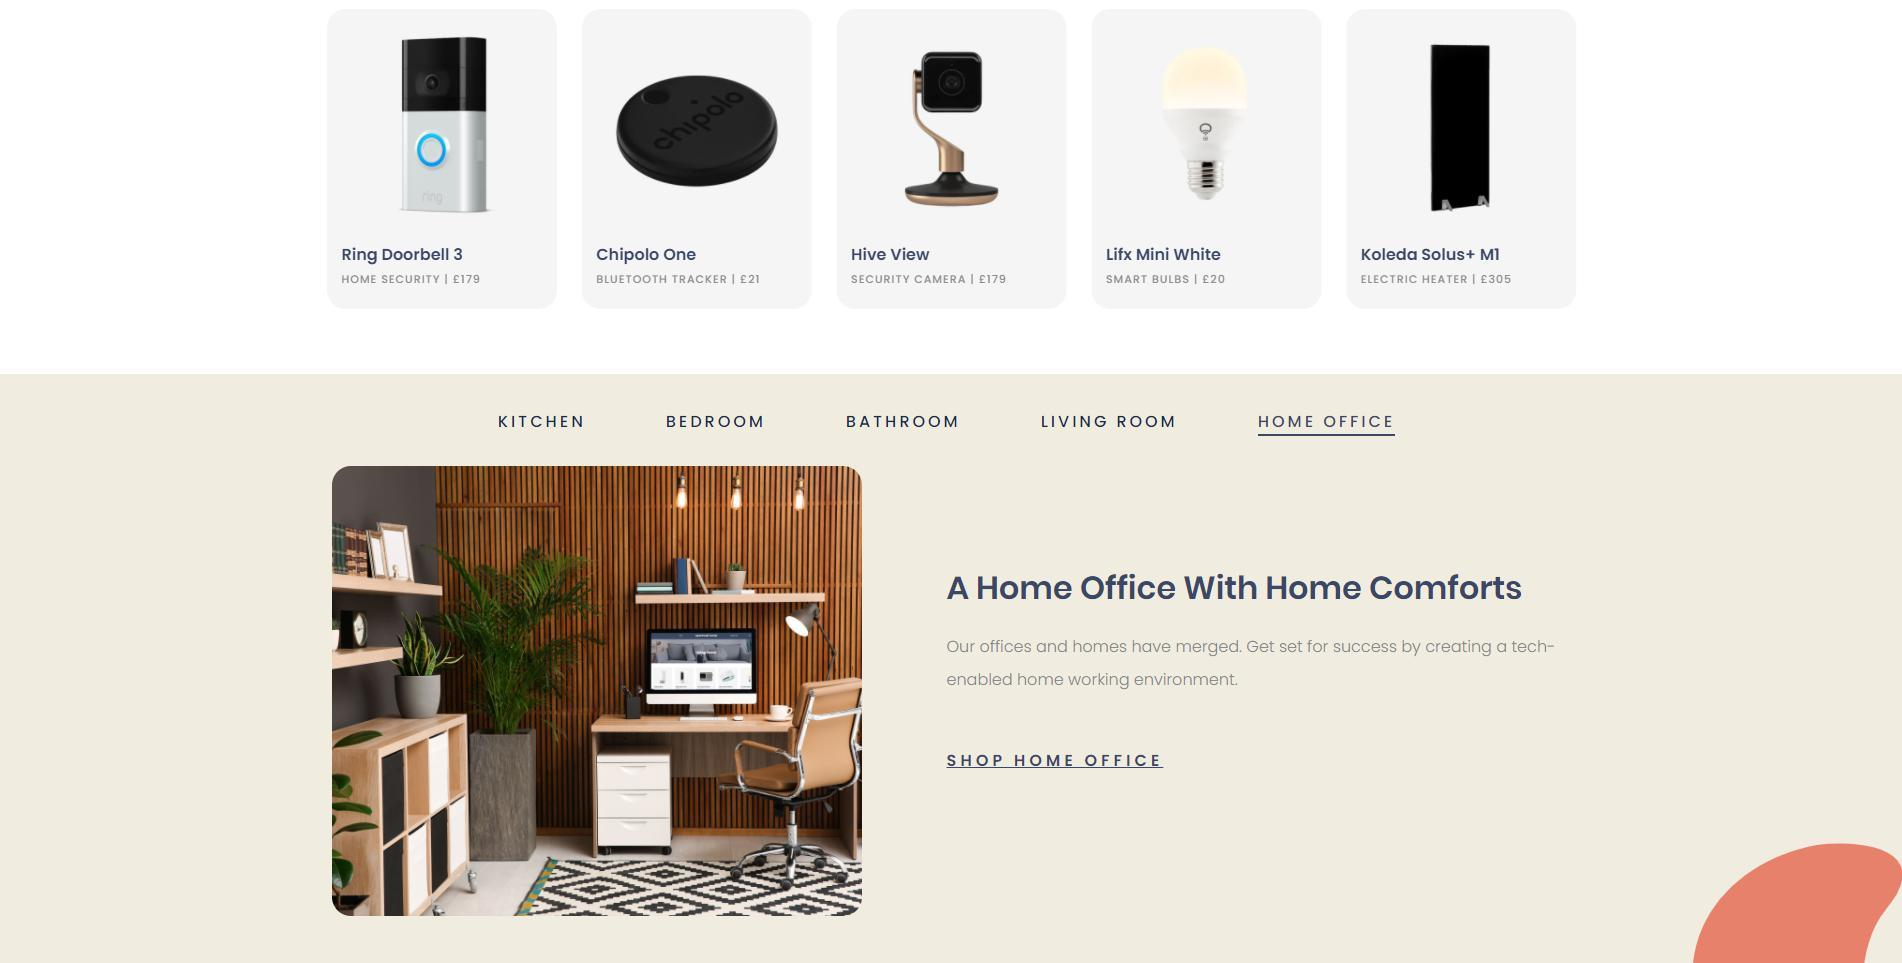 Shopify provides you loads of sleek and professional themes like this one